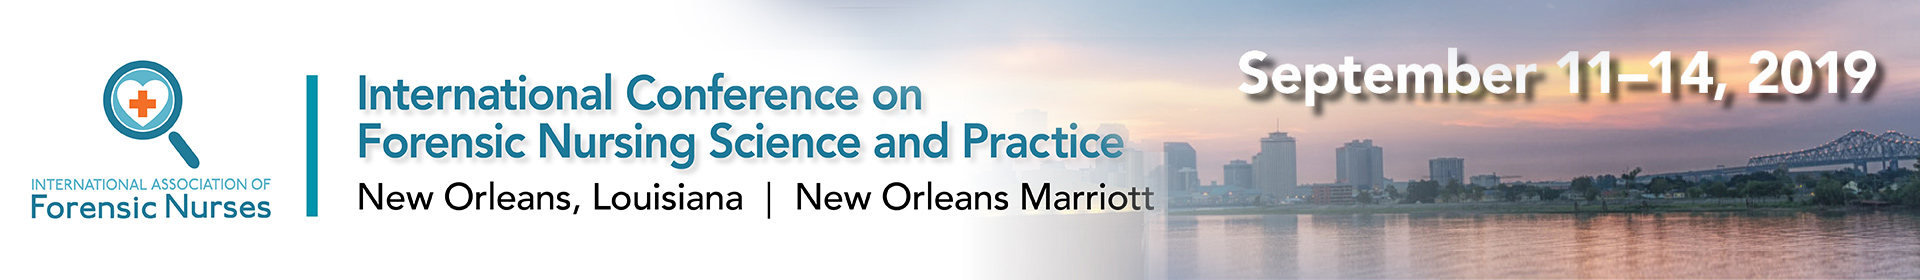 2019 International Conference on Forensic Nursing Science and Practice Event Banner